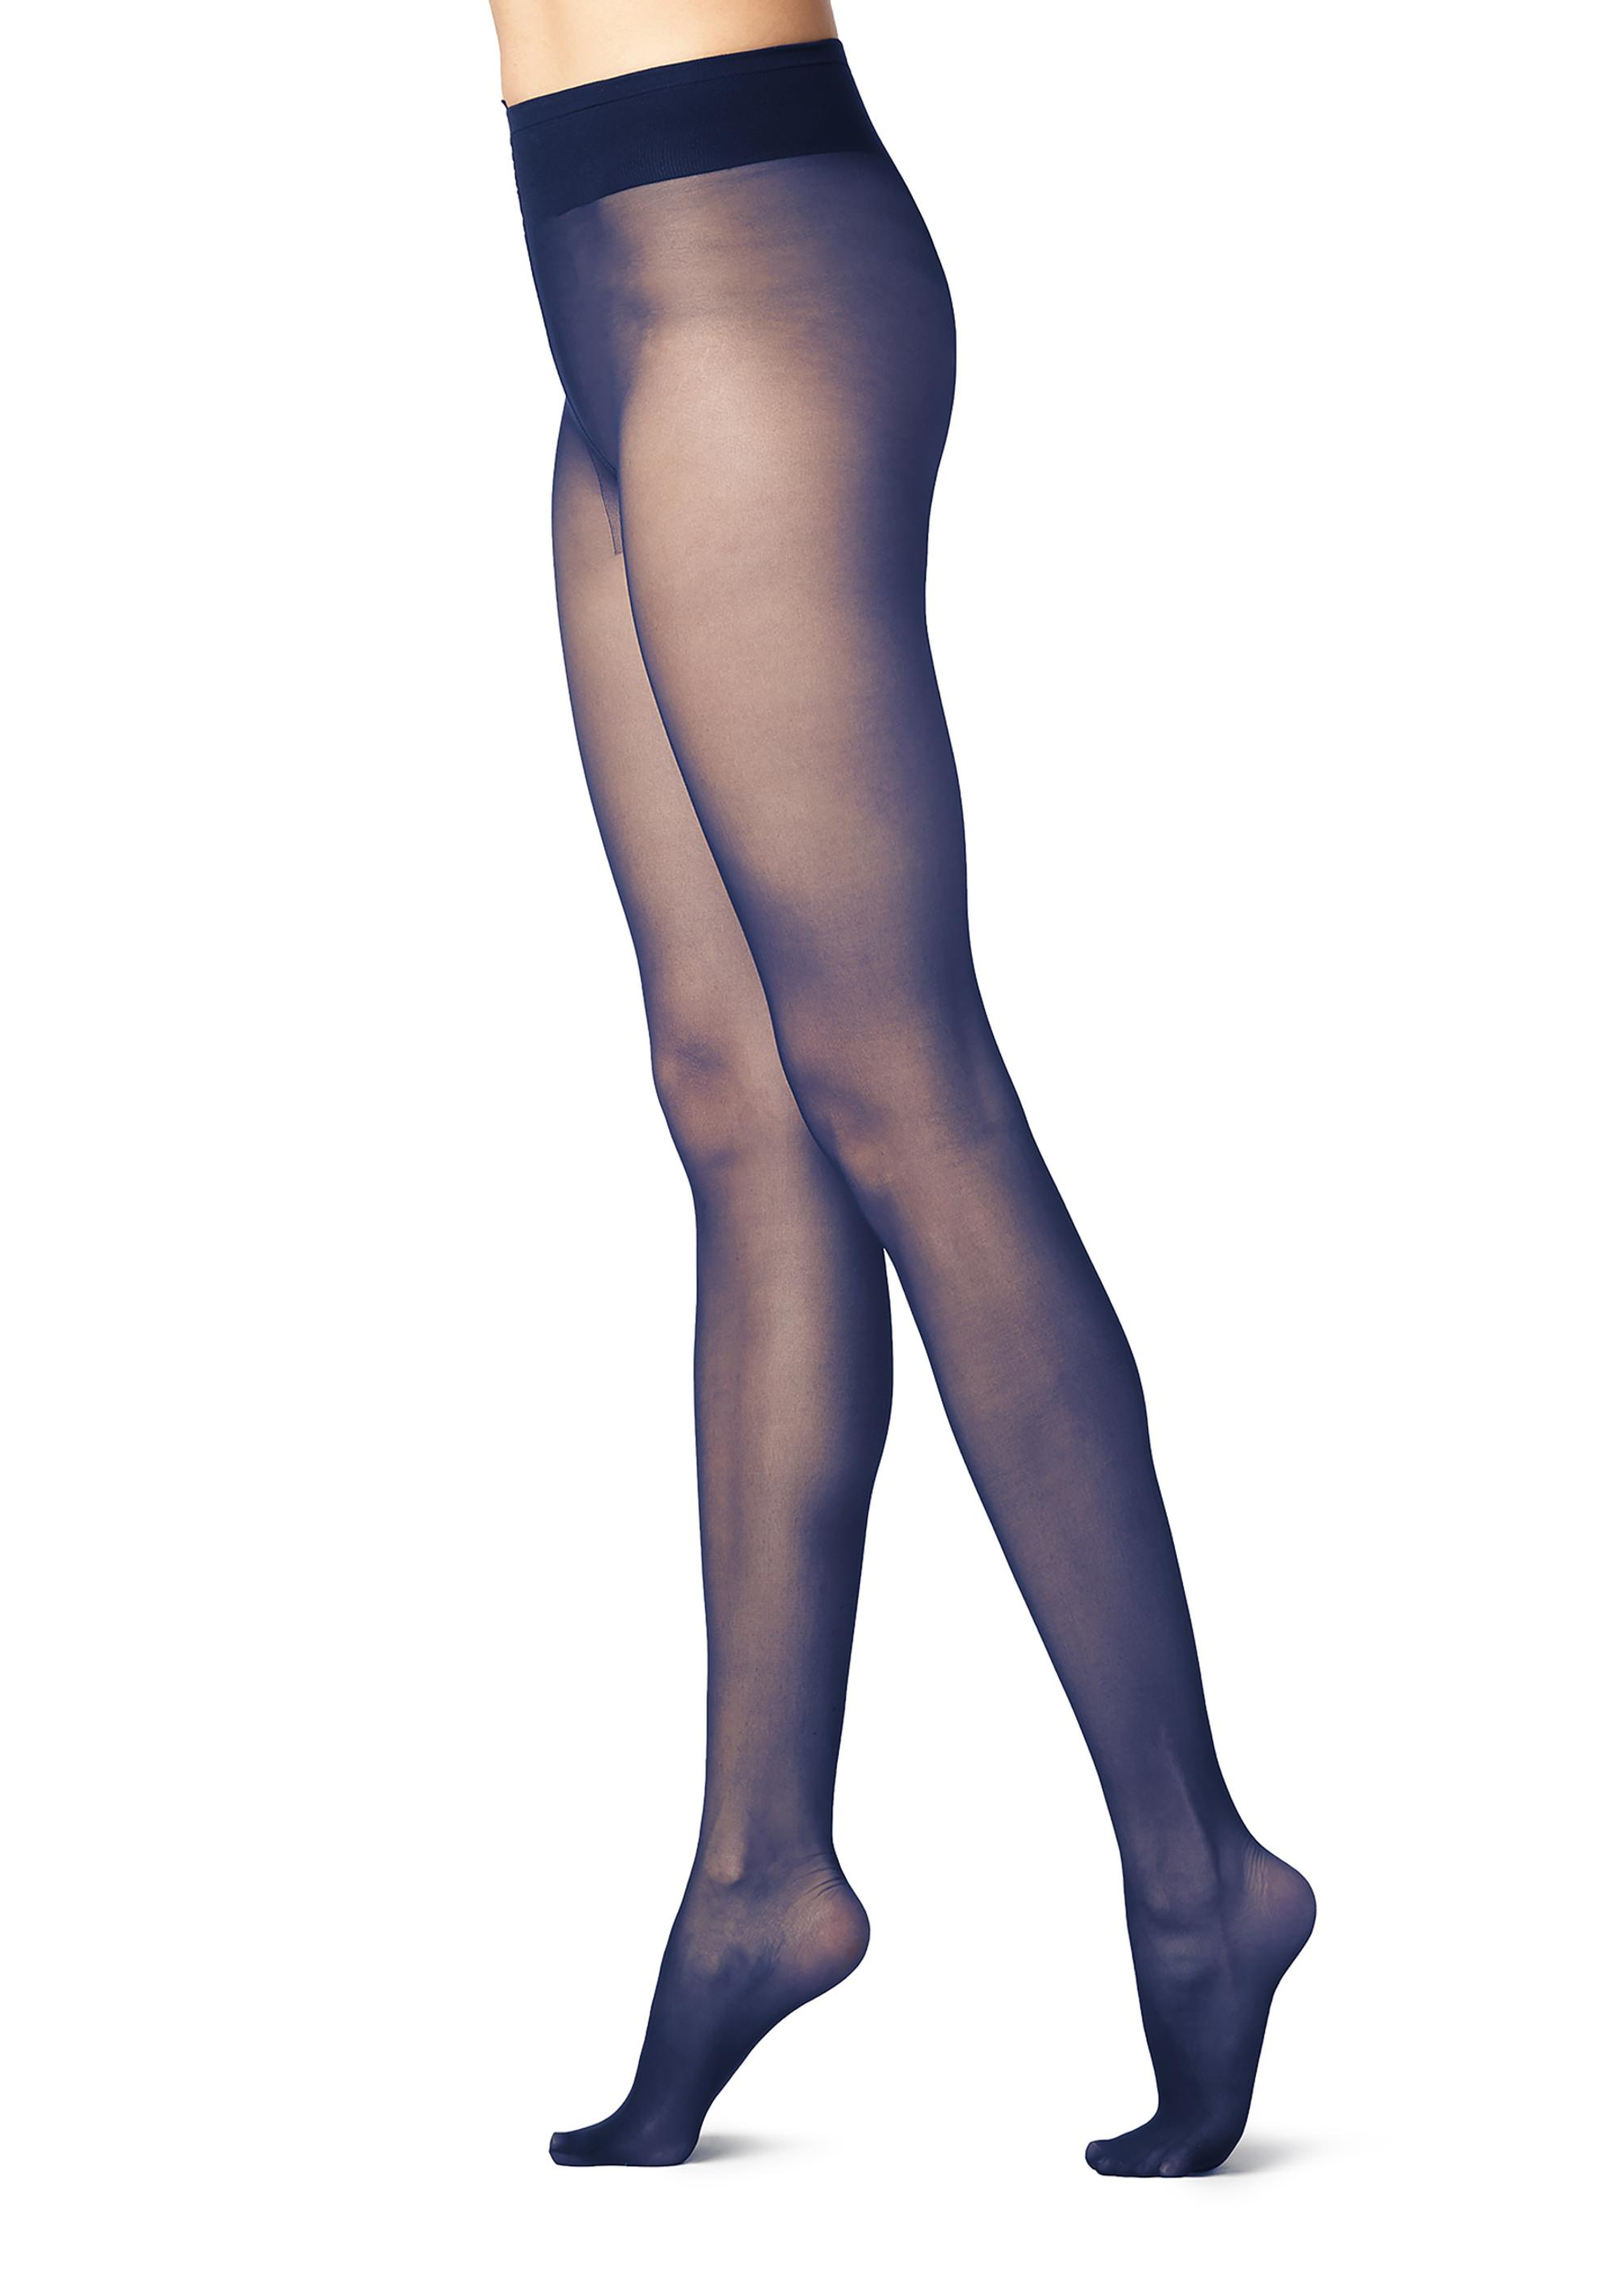 Can totaly sheer pantyhose